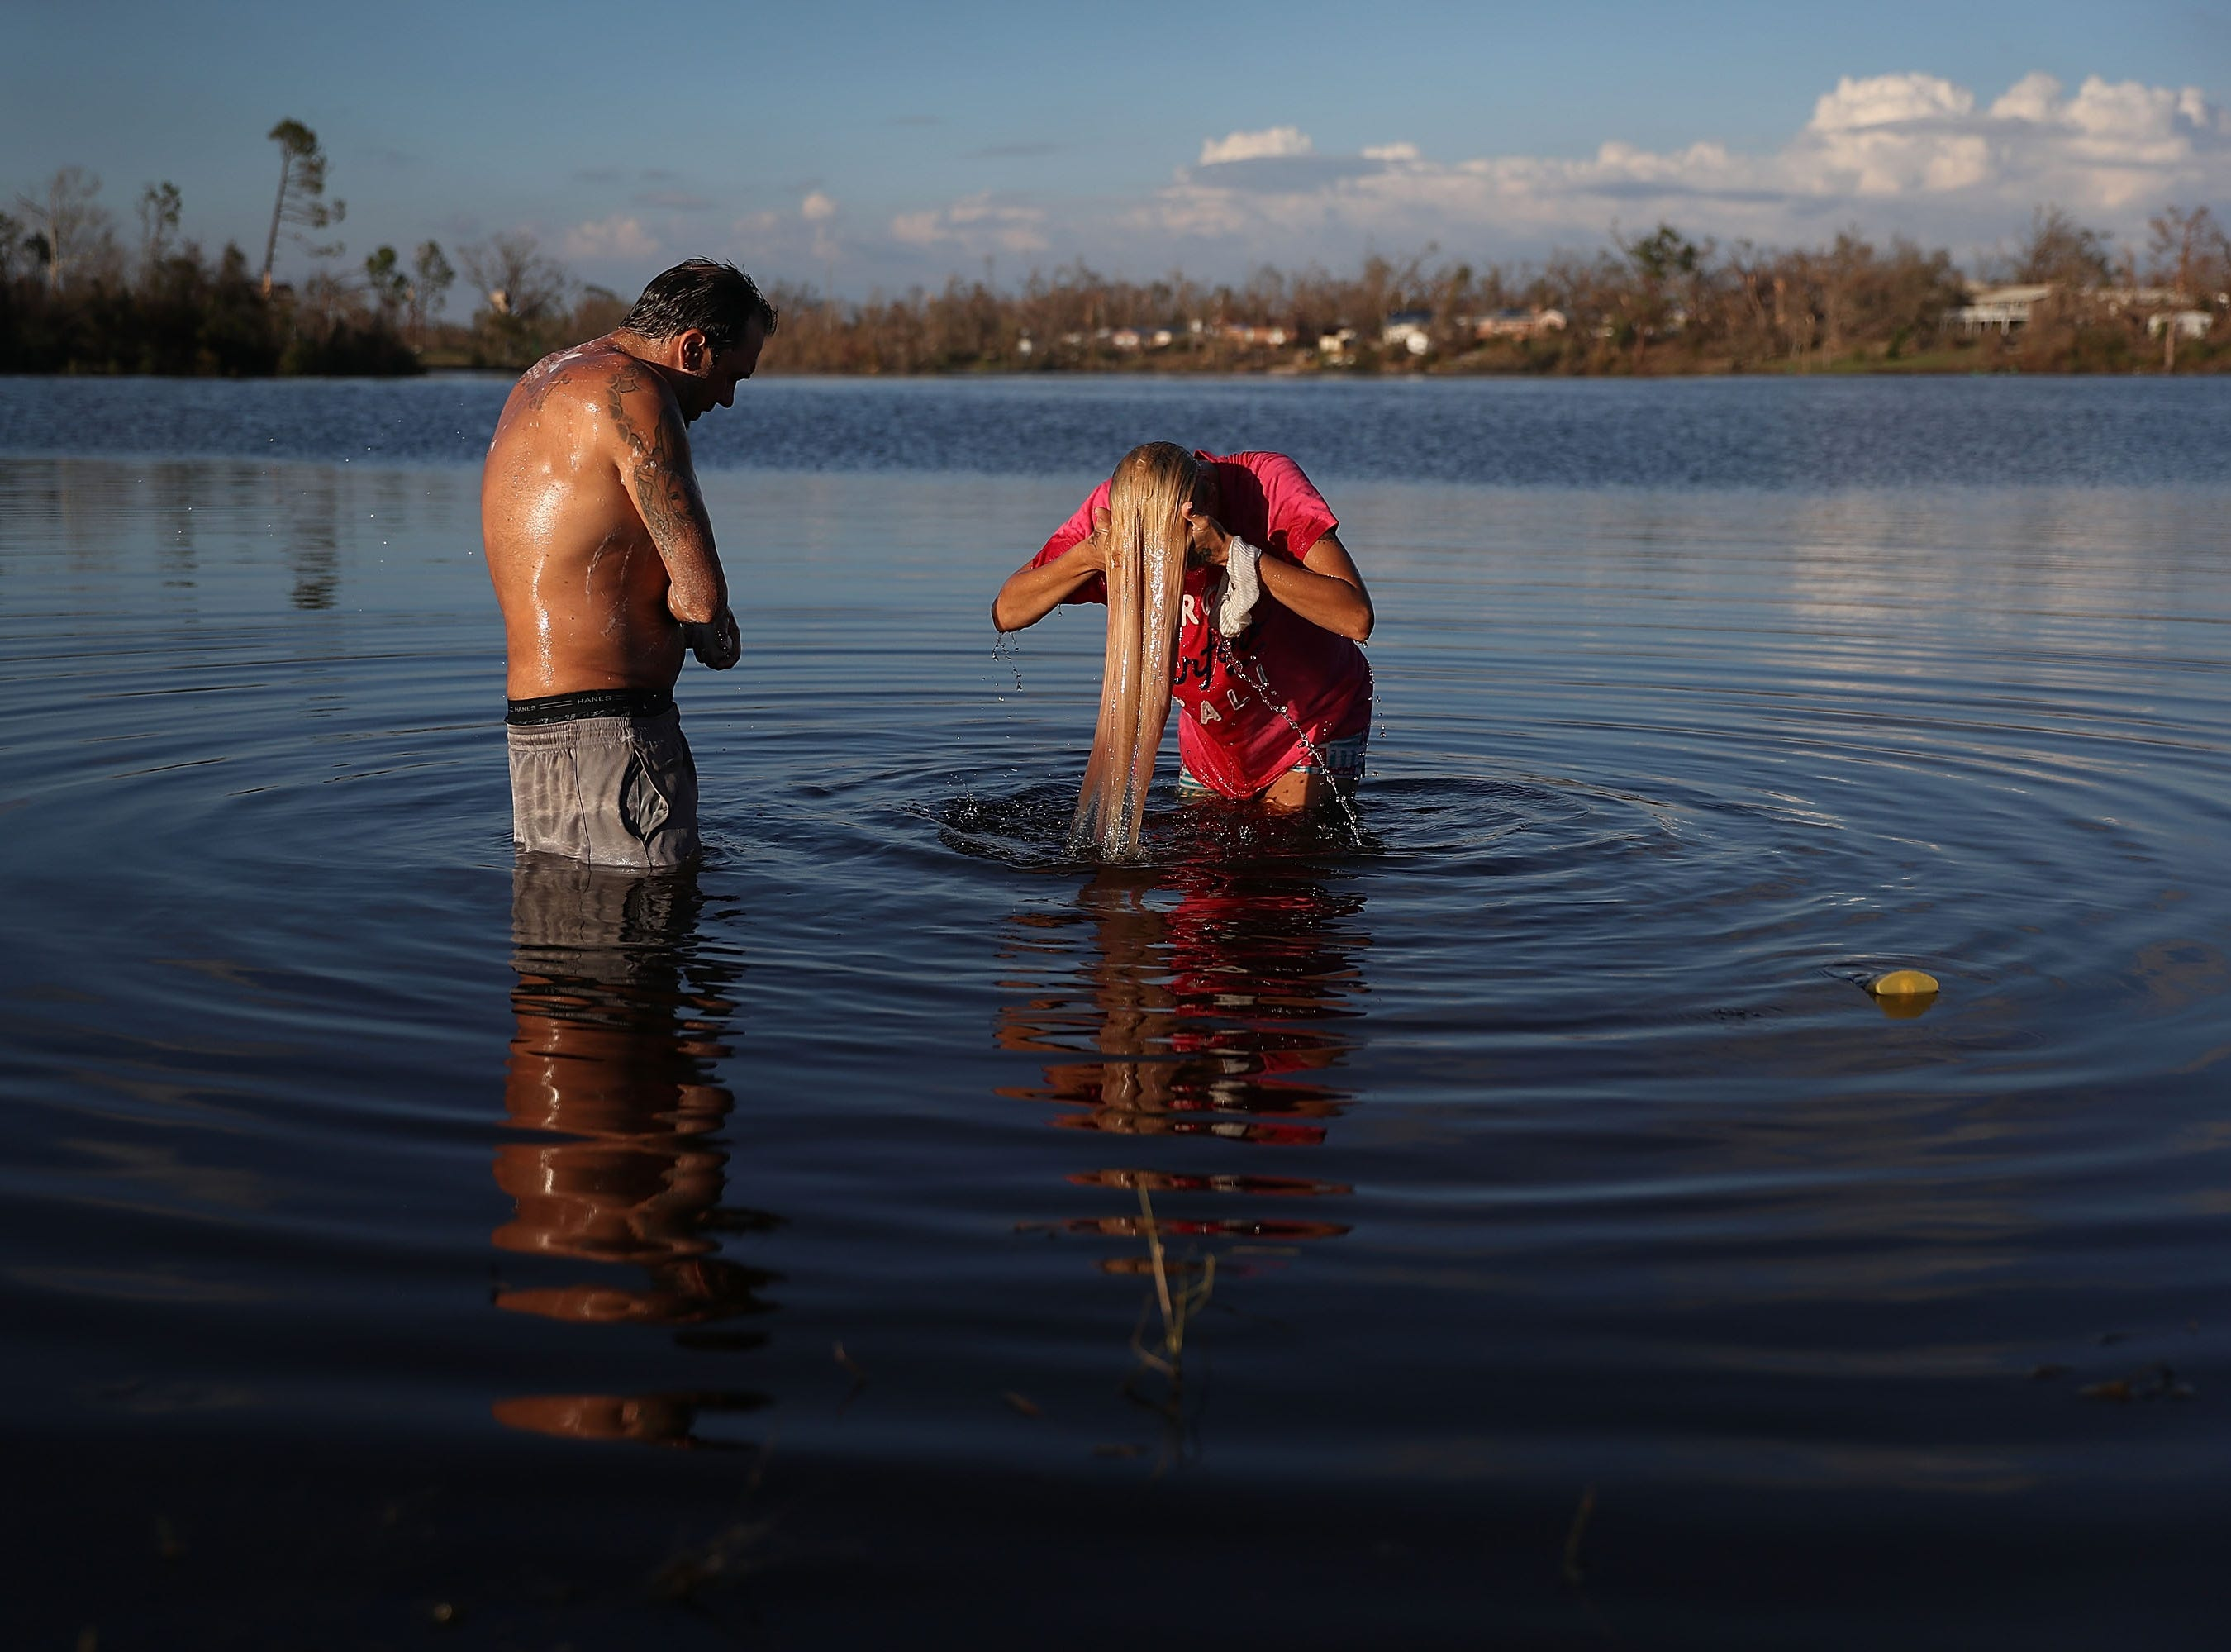 Justin Norman and Lisa Salle wash themselves in Lake Martin because their home has no running water after much of the municipality's infrastructure was damaged by Hurricane Michael on Oct. 16, 2018 in Panama City, Fla. Michael slammed into the Florida Panhandle on October 10 as a Category 4 storm, causing widespread damage and claiming as many as 26 lives.